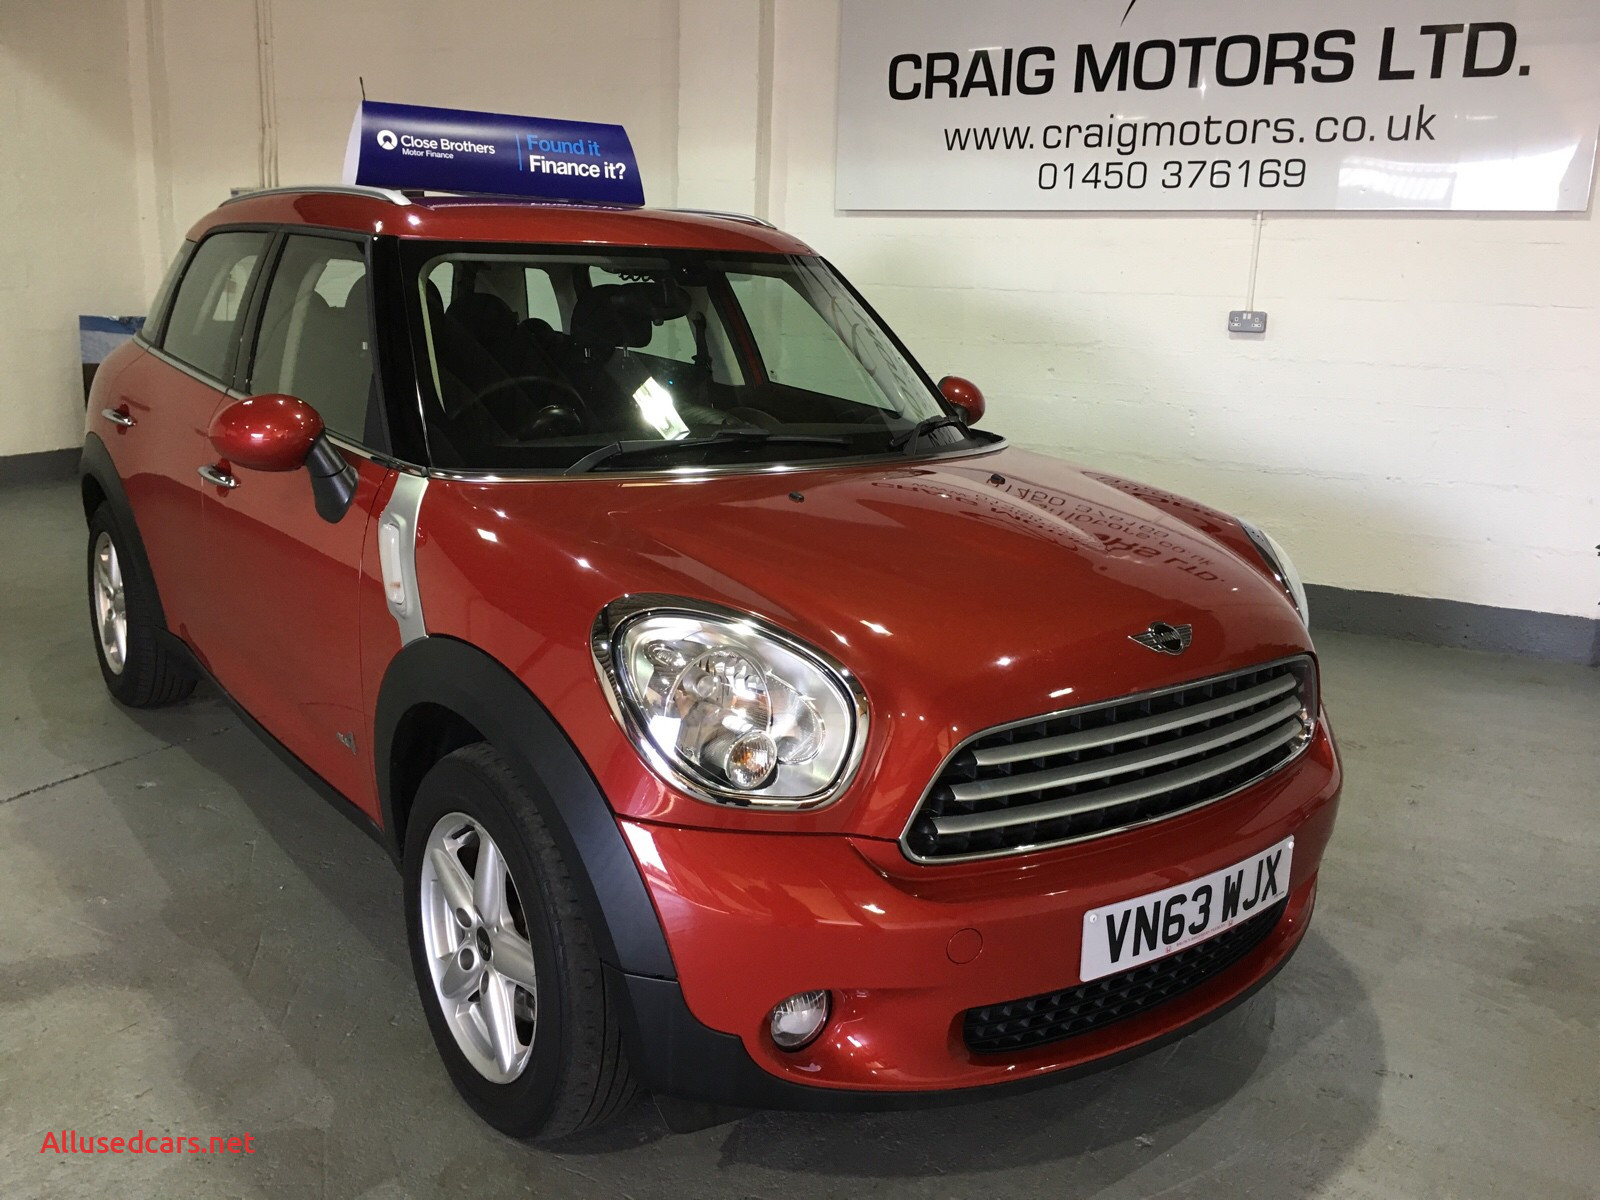 Mini Cooper 2014 Luxury See Previous sold Car From Craig Motors